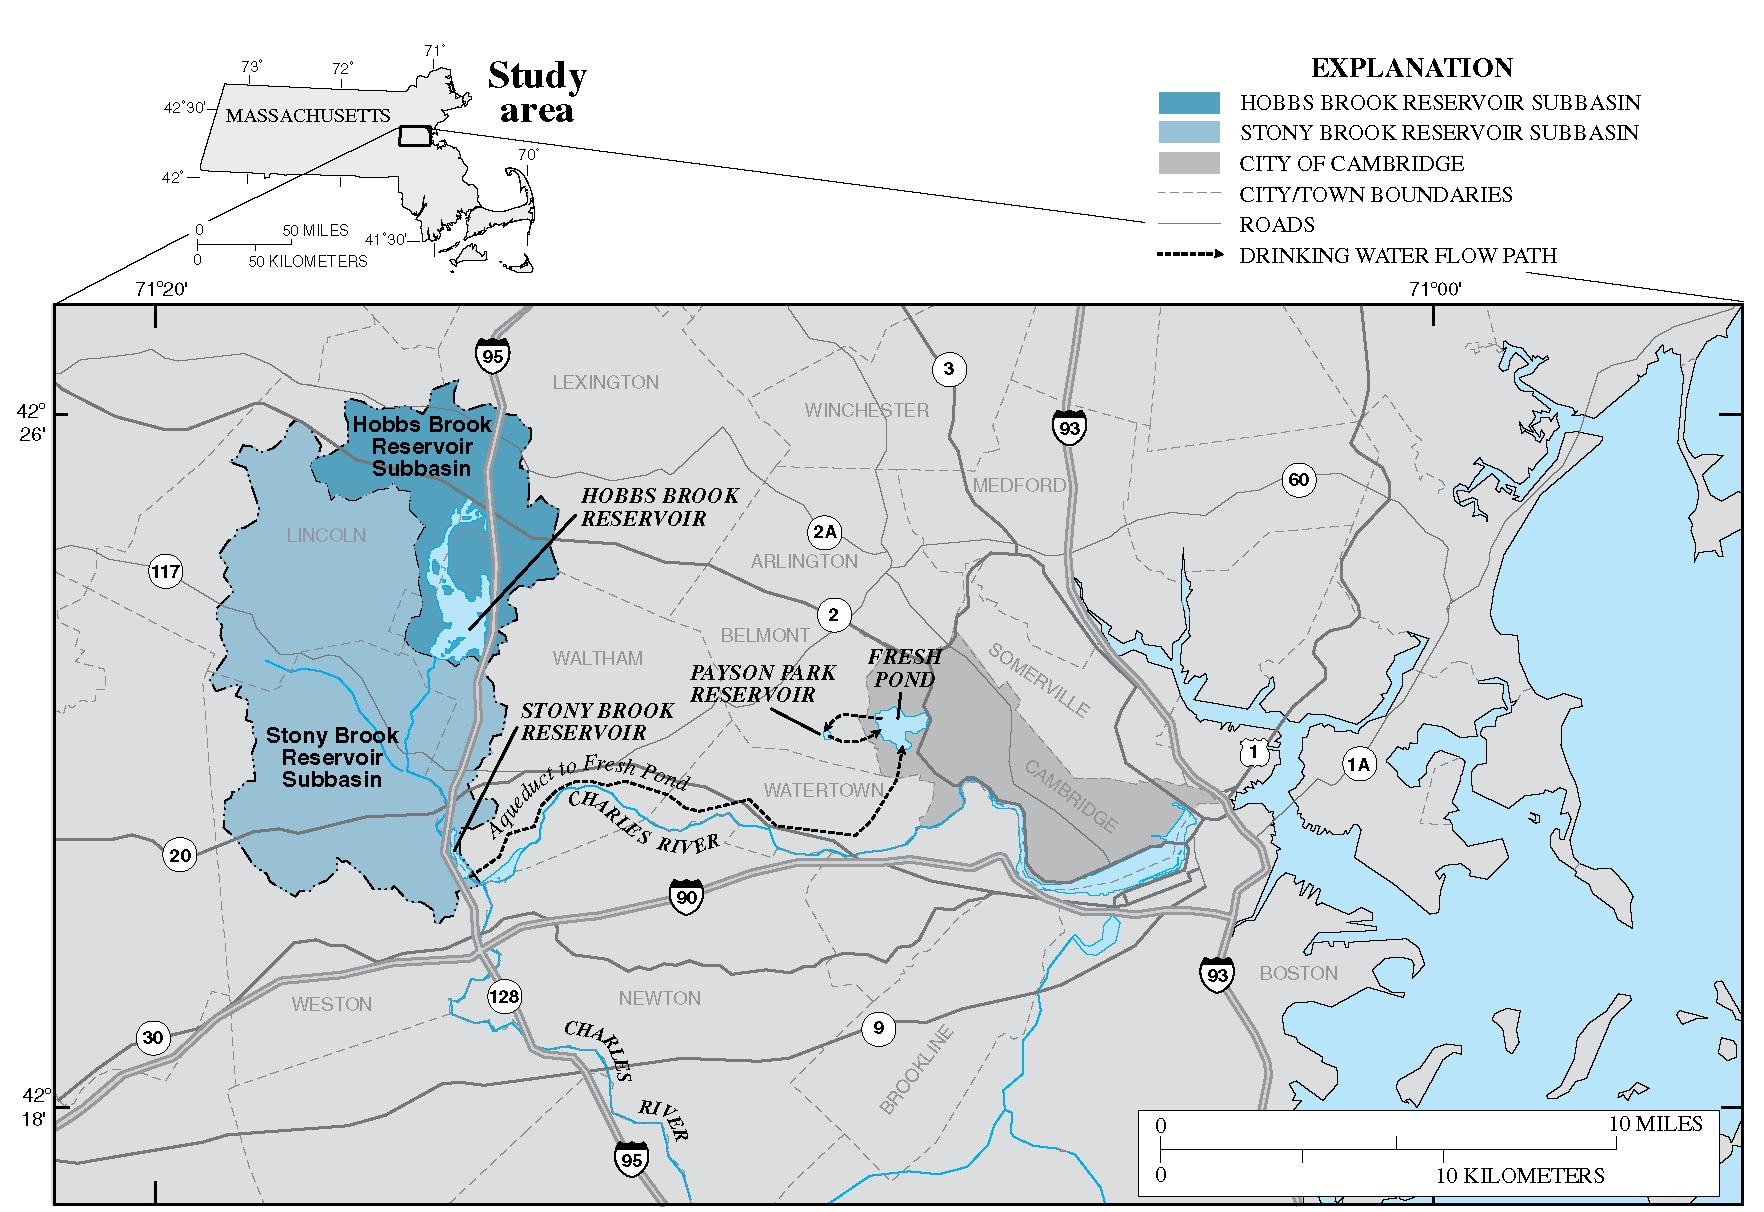 USGS watershed image